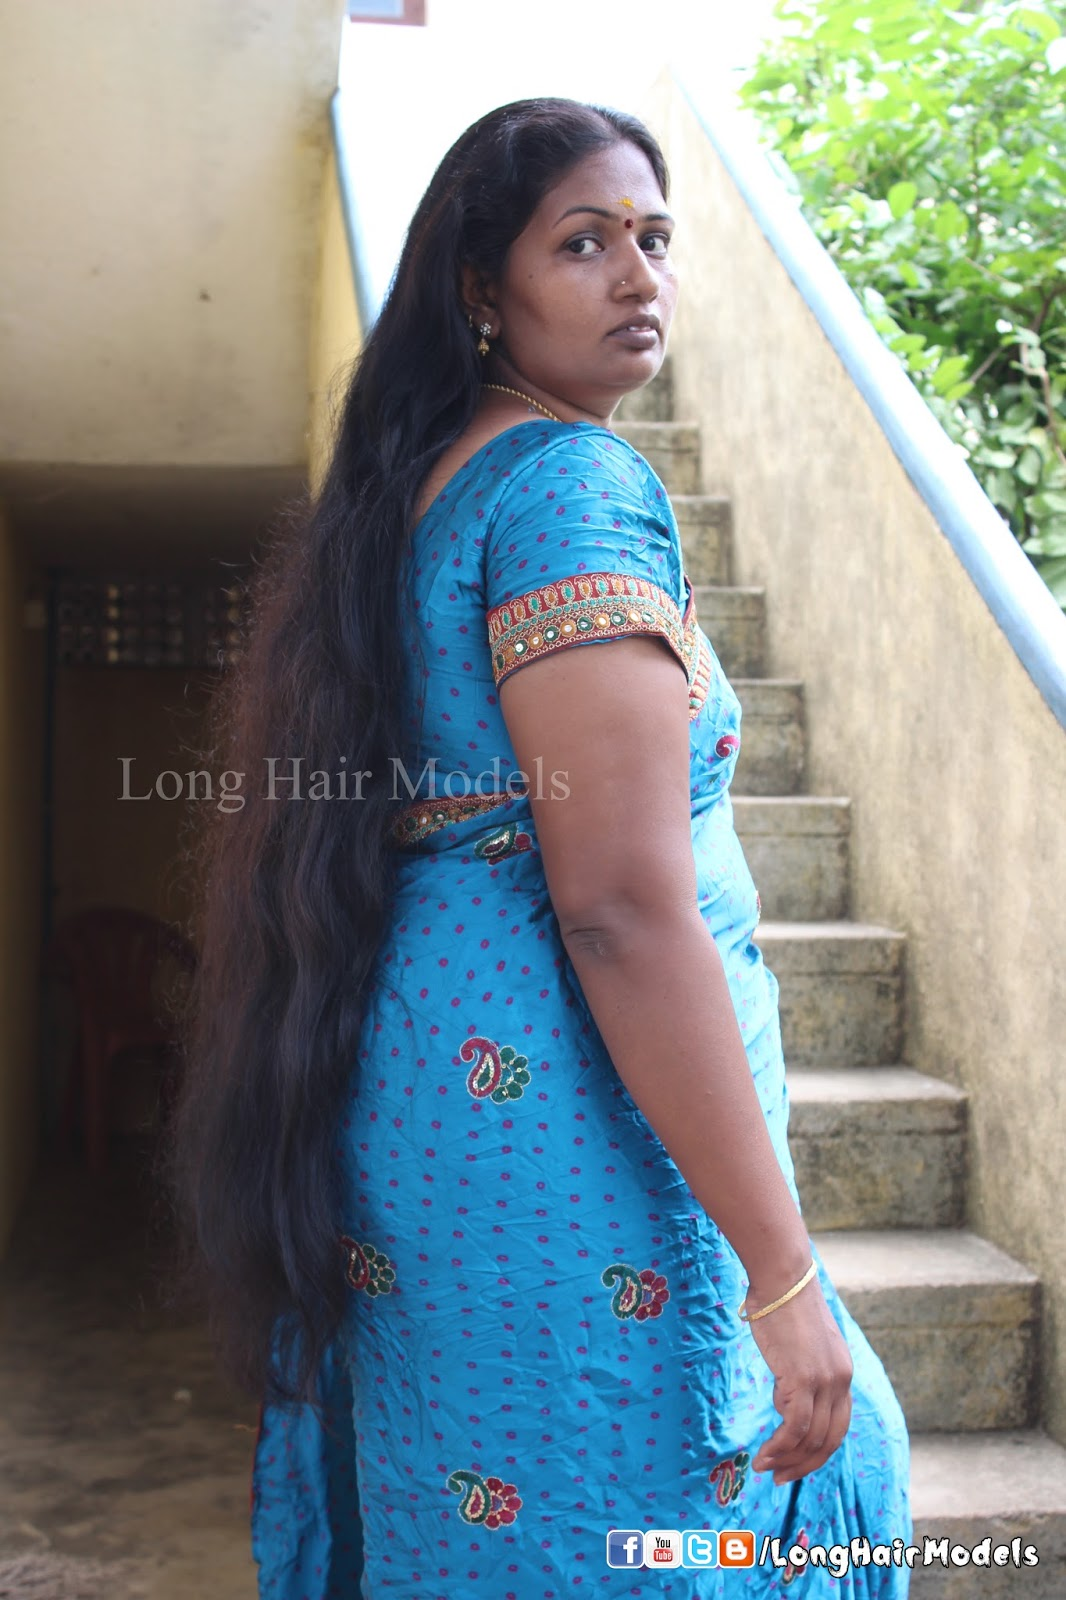 long hair models: